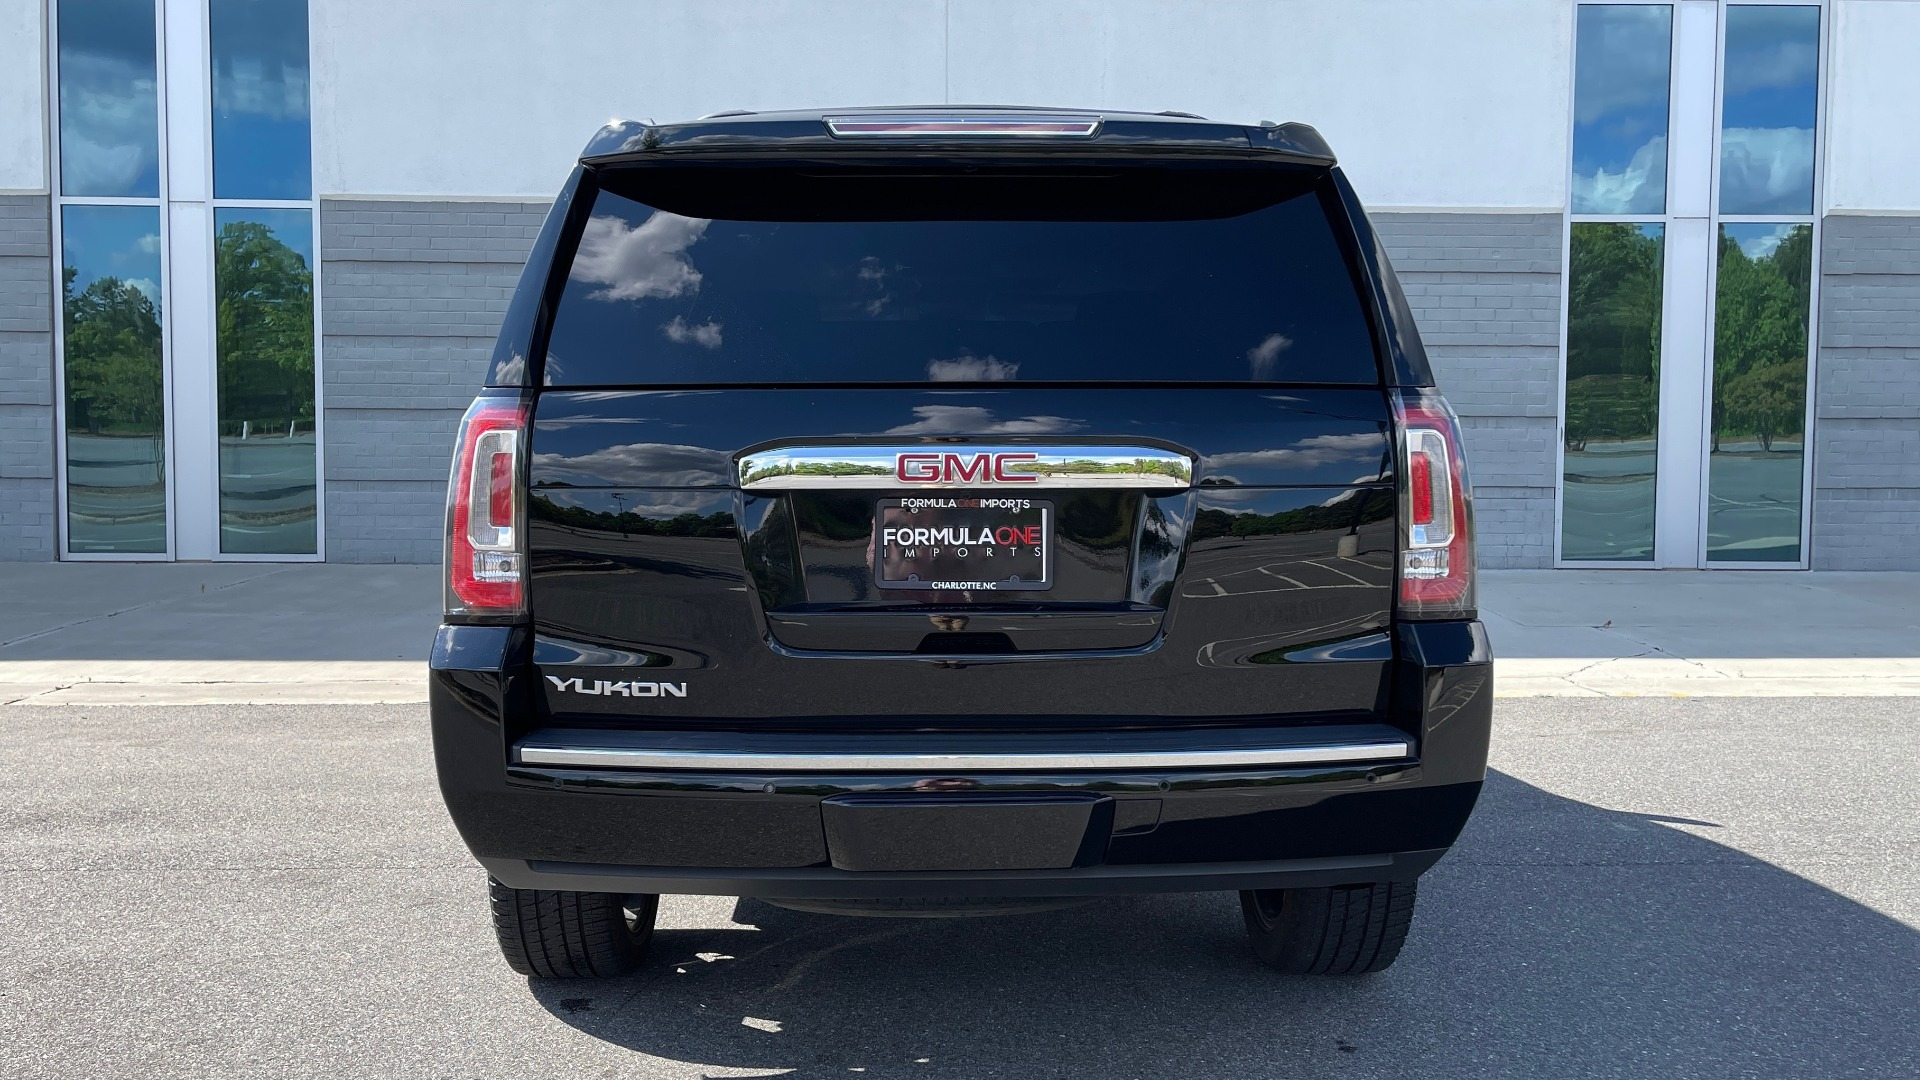 Used 2017 GMC YUKON DENALI 4WD / OPEN ROAD / NAV / ENTERTAINMENT / SUNROOF / ADAPT CRUISE for sale Sold at Formula Imports in Charlotte NC 28227 27